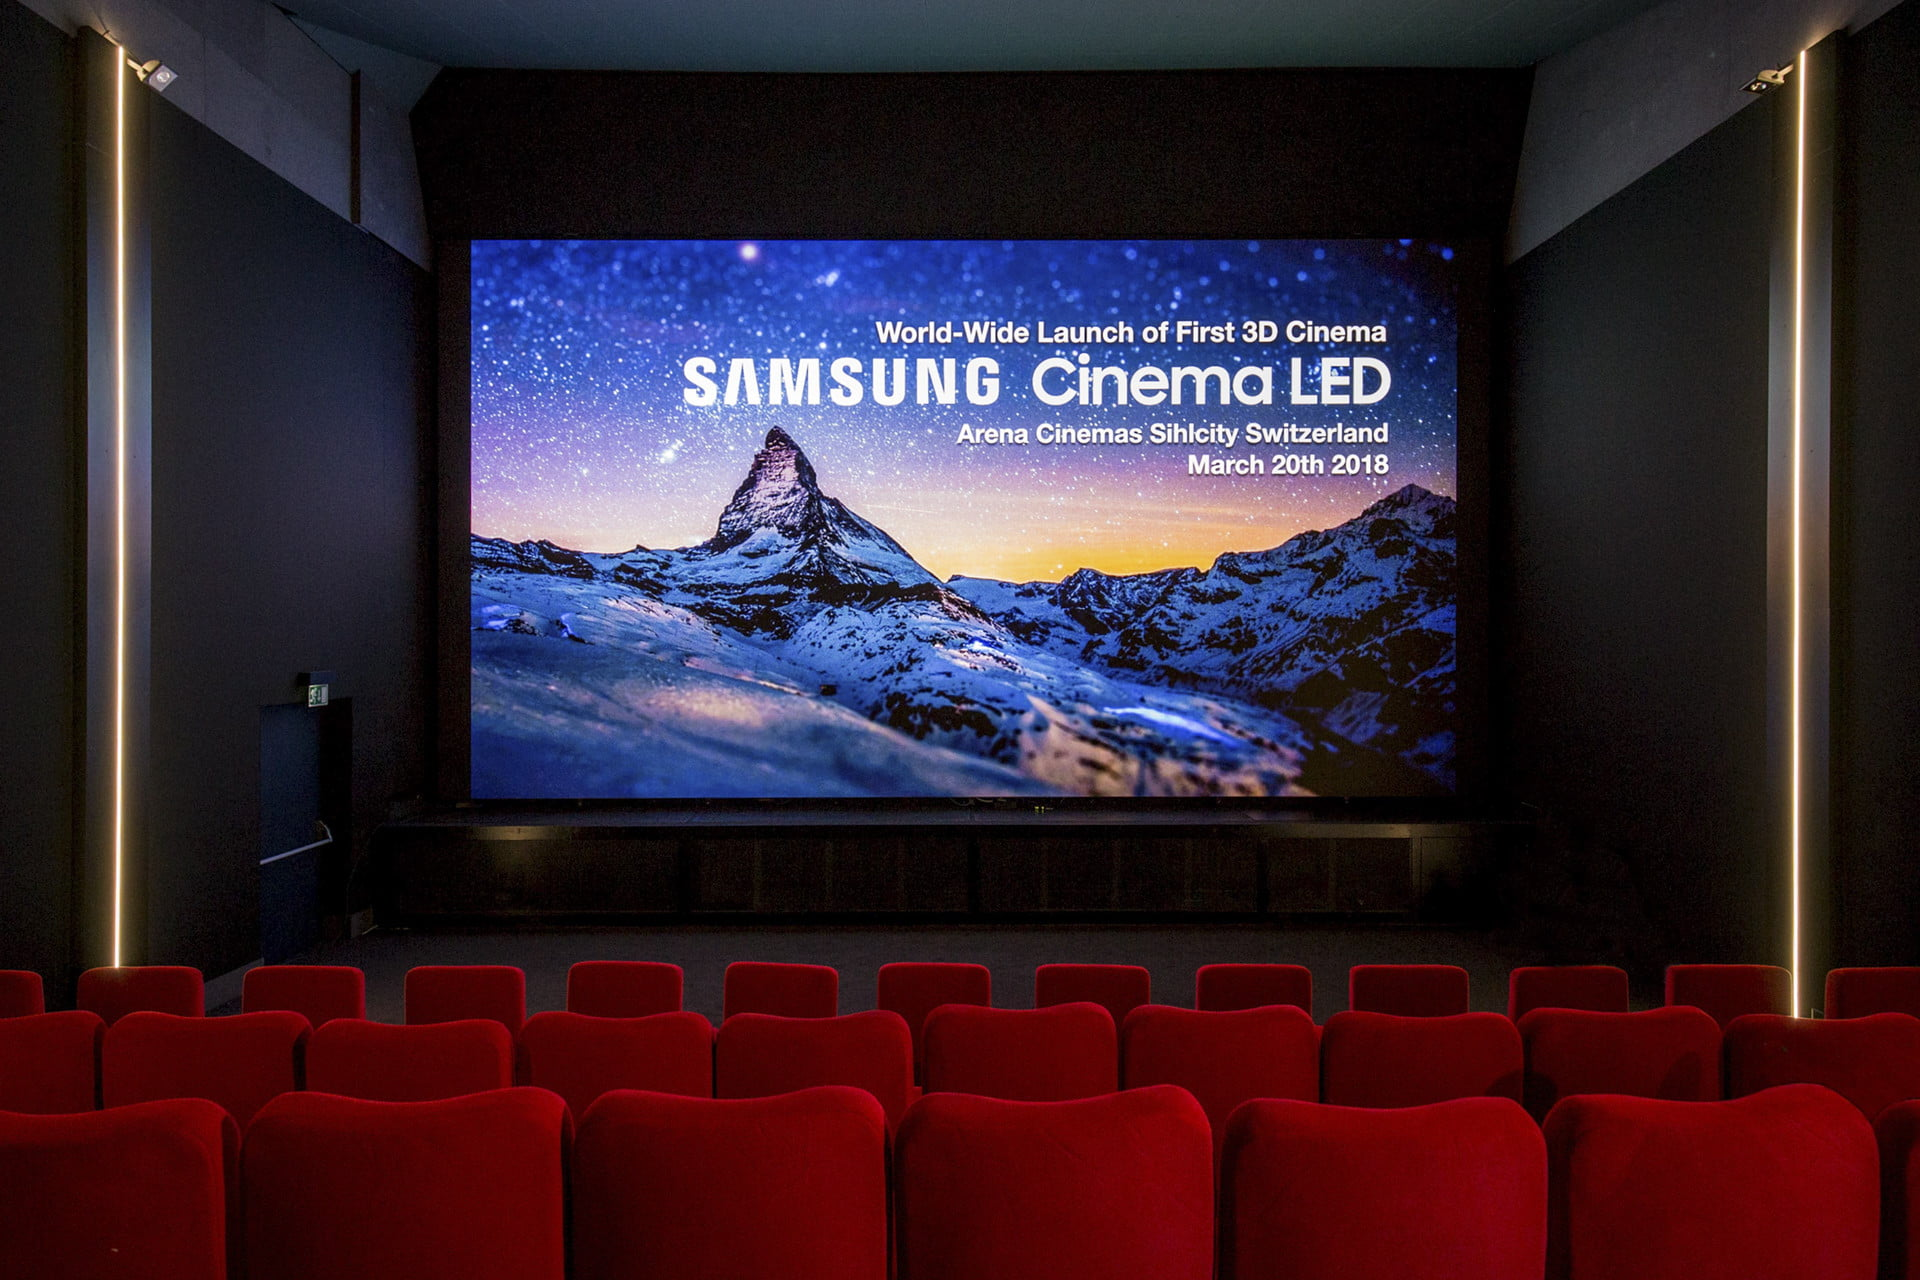 Samsung S 34 Foot Onyx Led Tv Could Change Movie Theaters